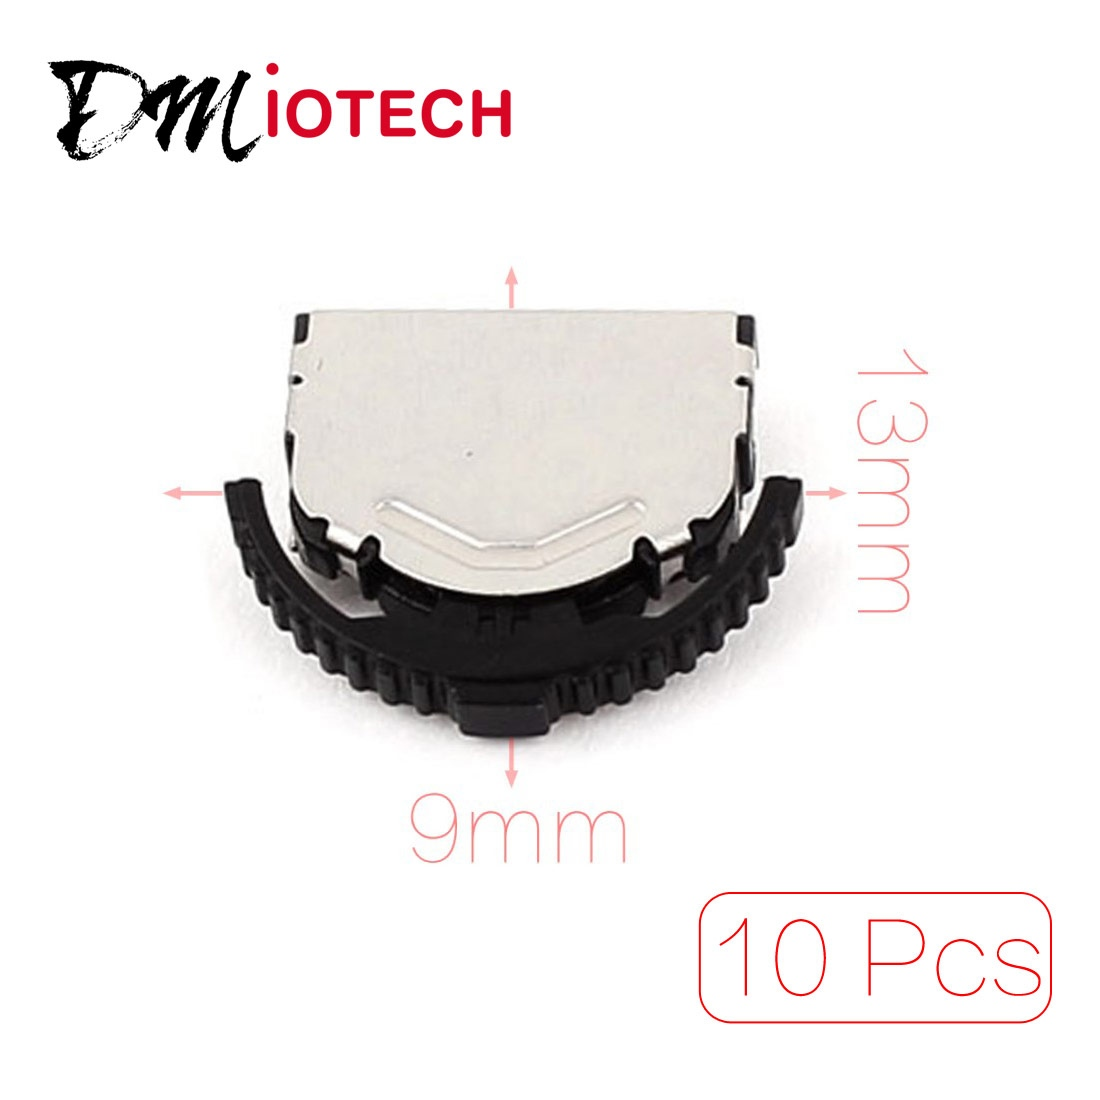 UXCELL 10 Pcs 3 Pin 5 Way Momentary Push Button Smd Smt Mini Tactile Switch momentary uxcell 10 pcs single unit pushwheel thumbwheel switch km1 0 9